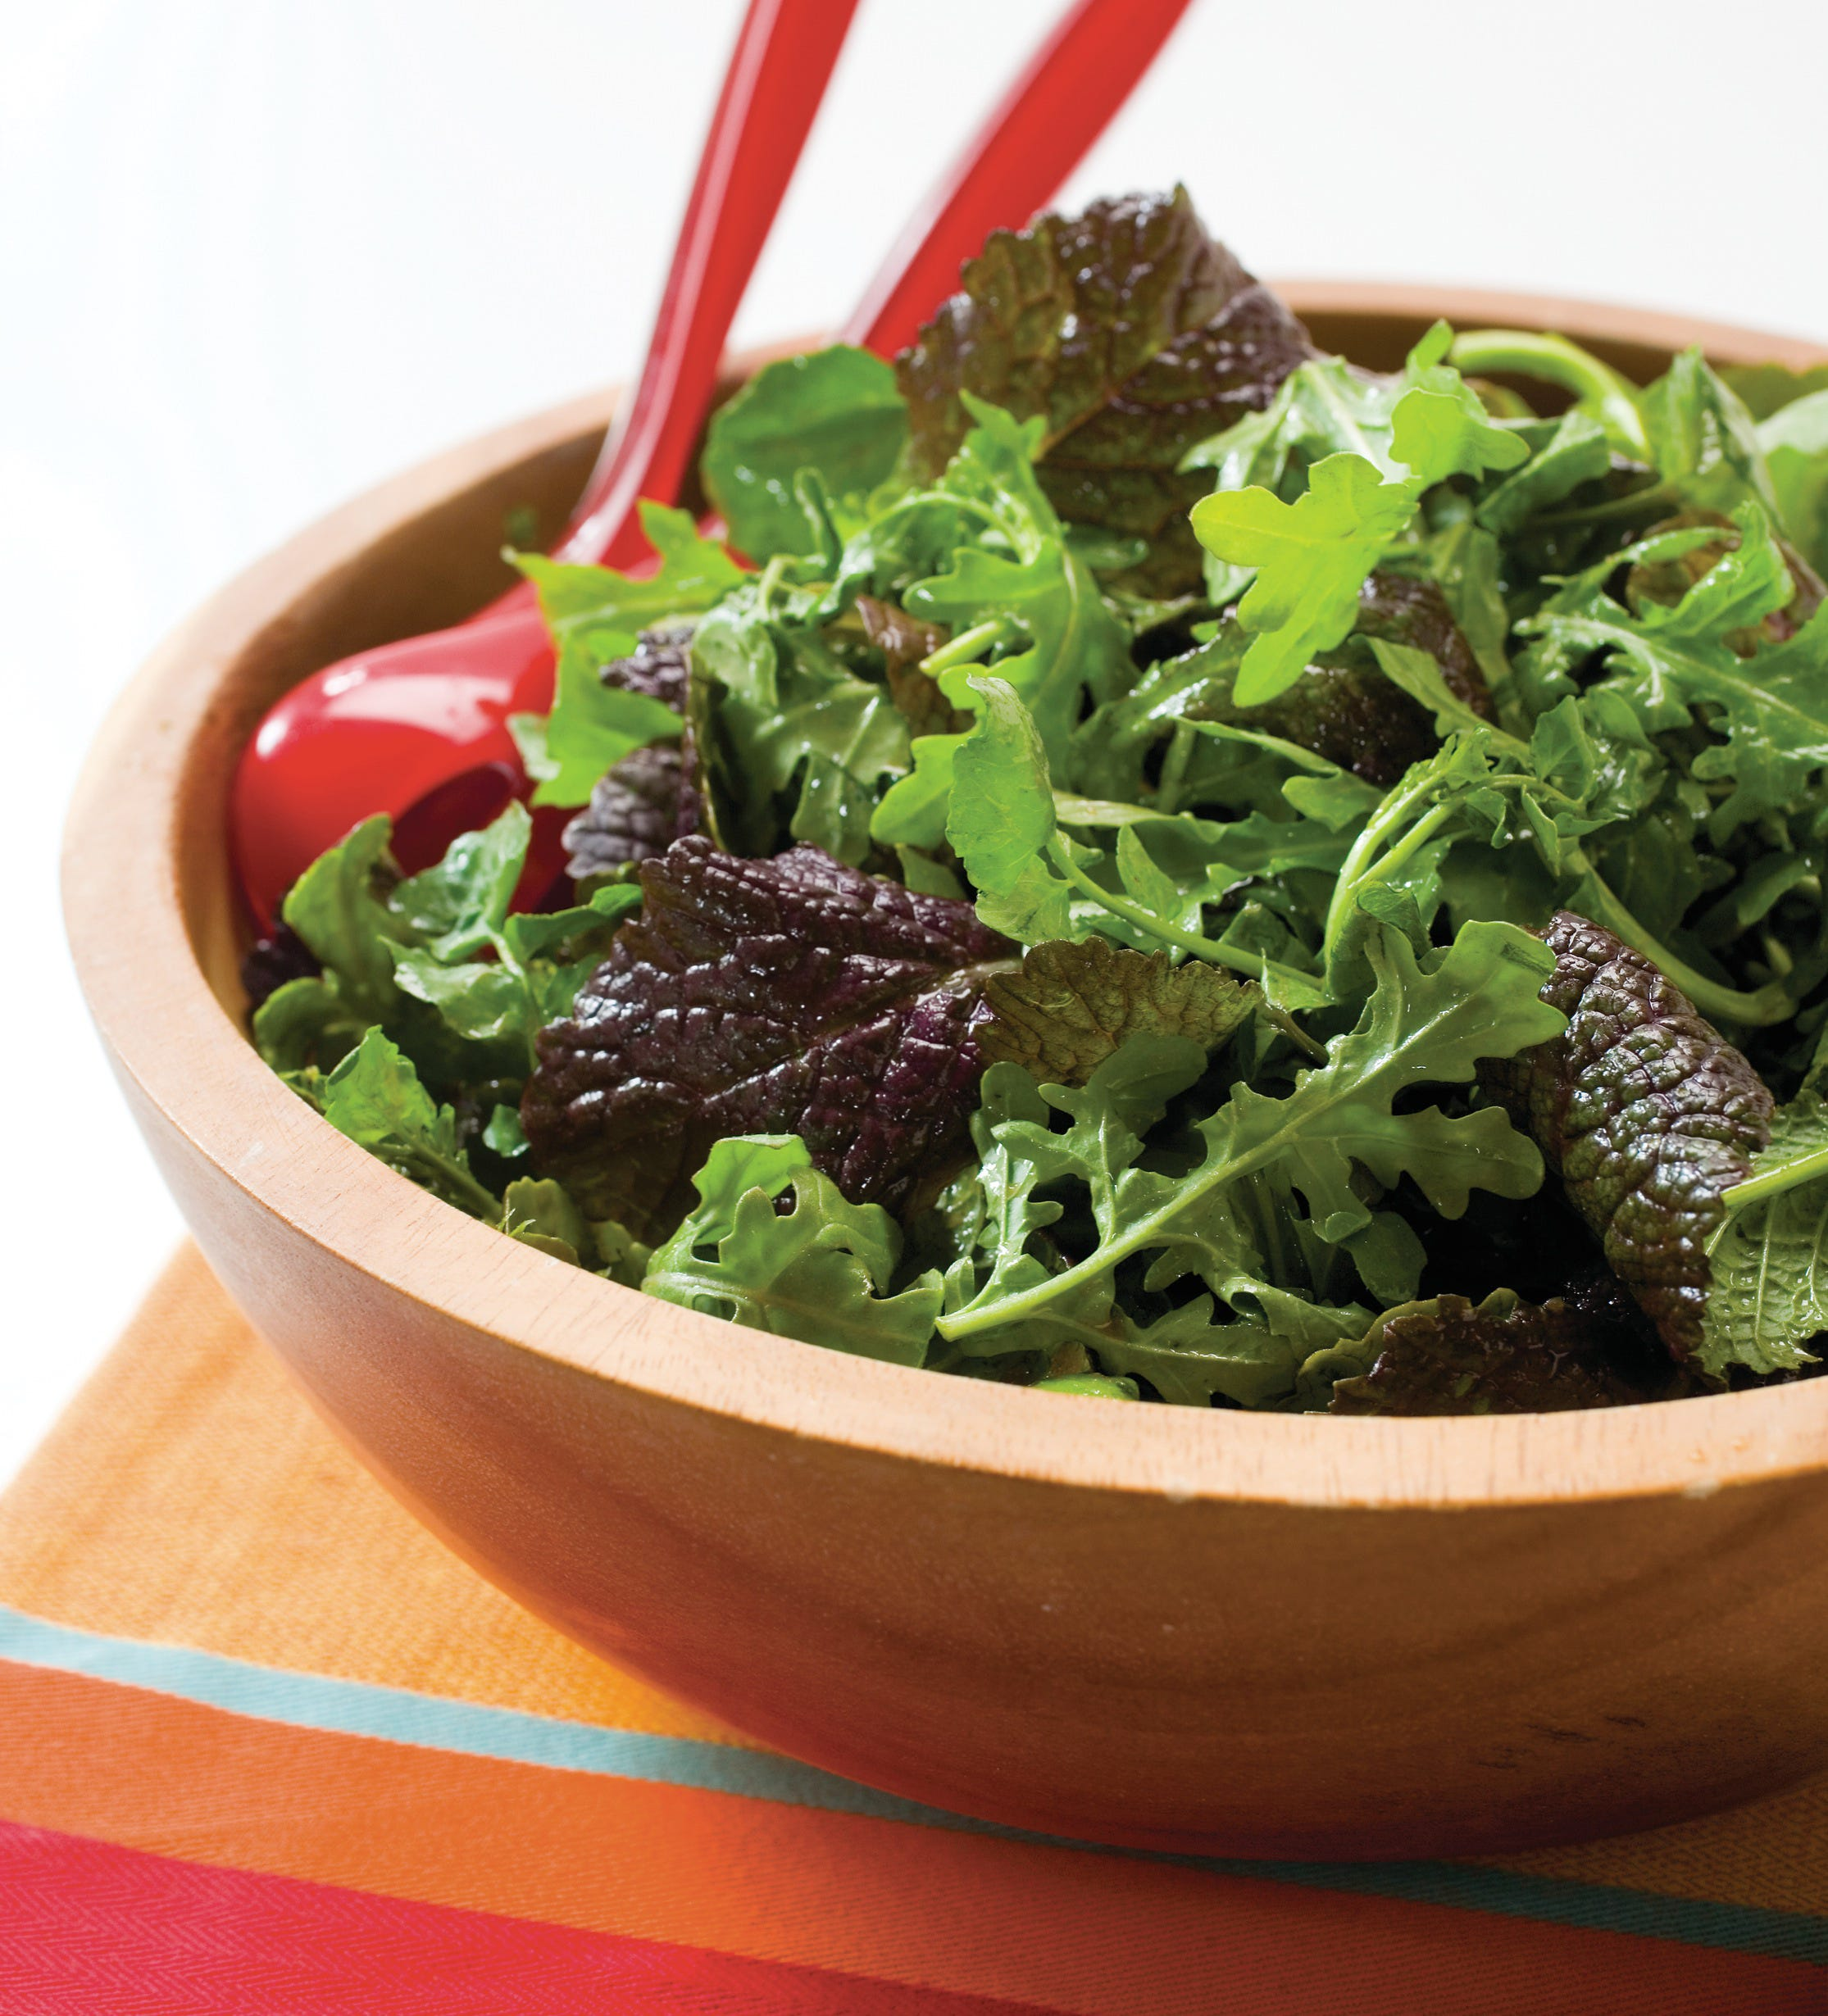 Stem School In Springfield Ohio: 1 Dead In Listeria Outbreak Linked To Dole Salads